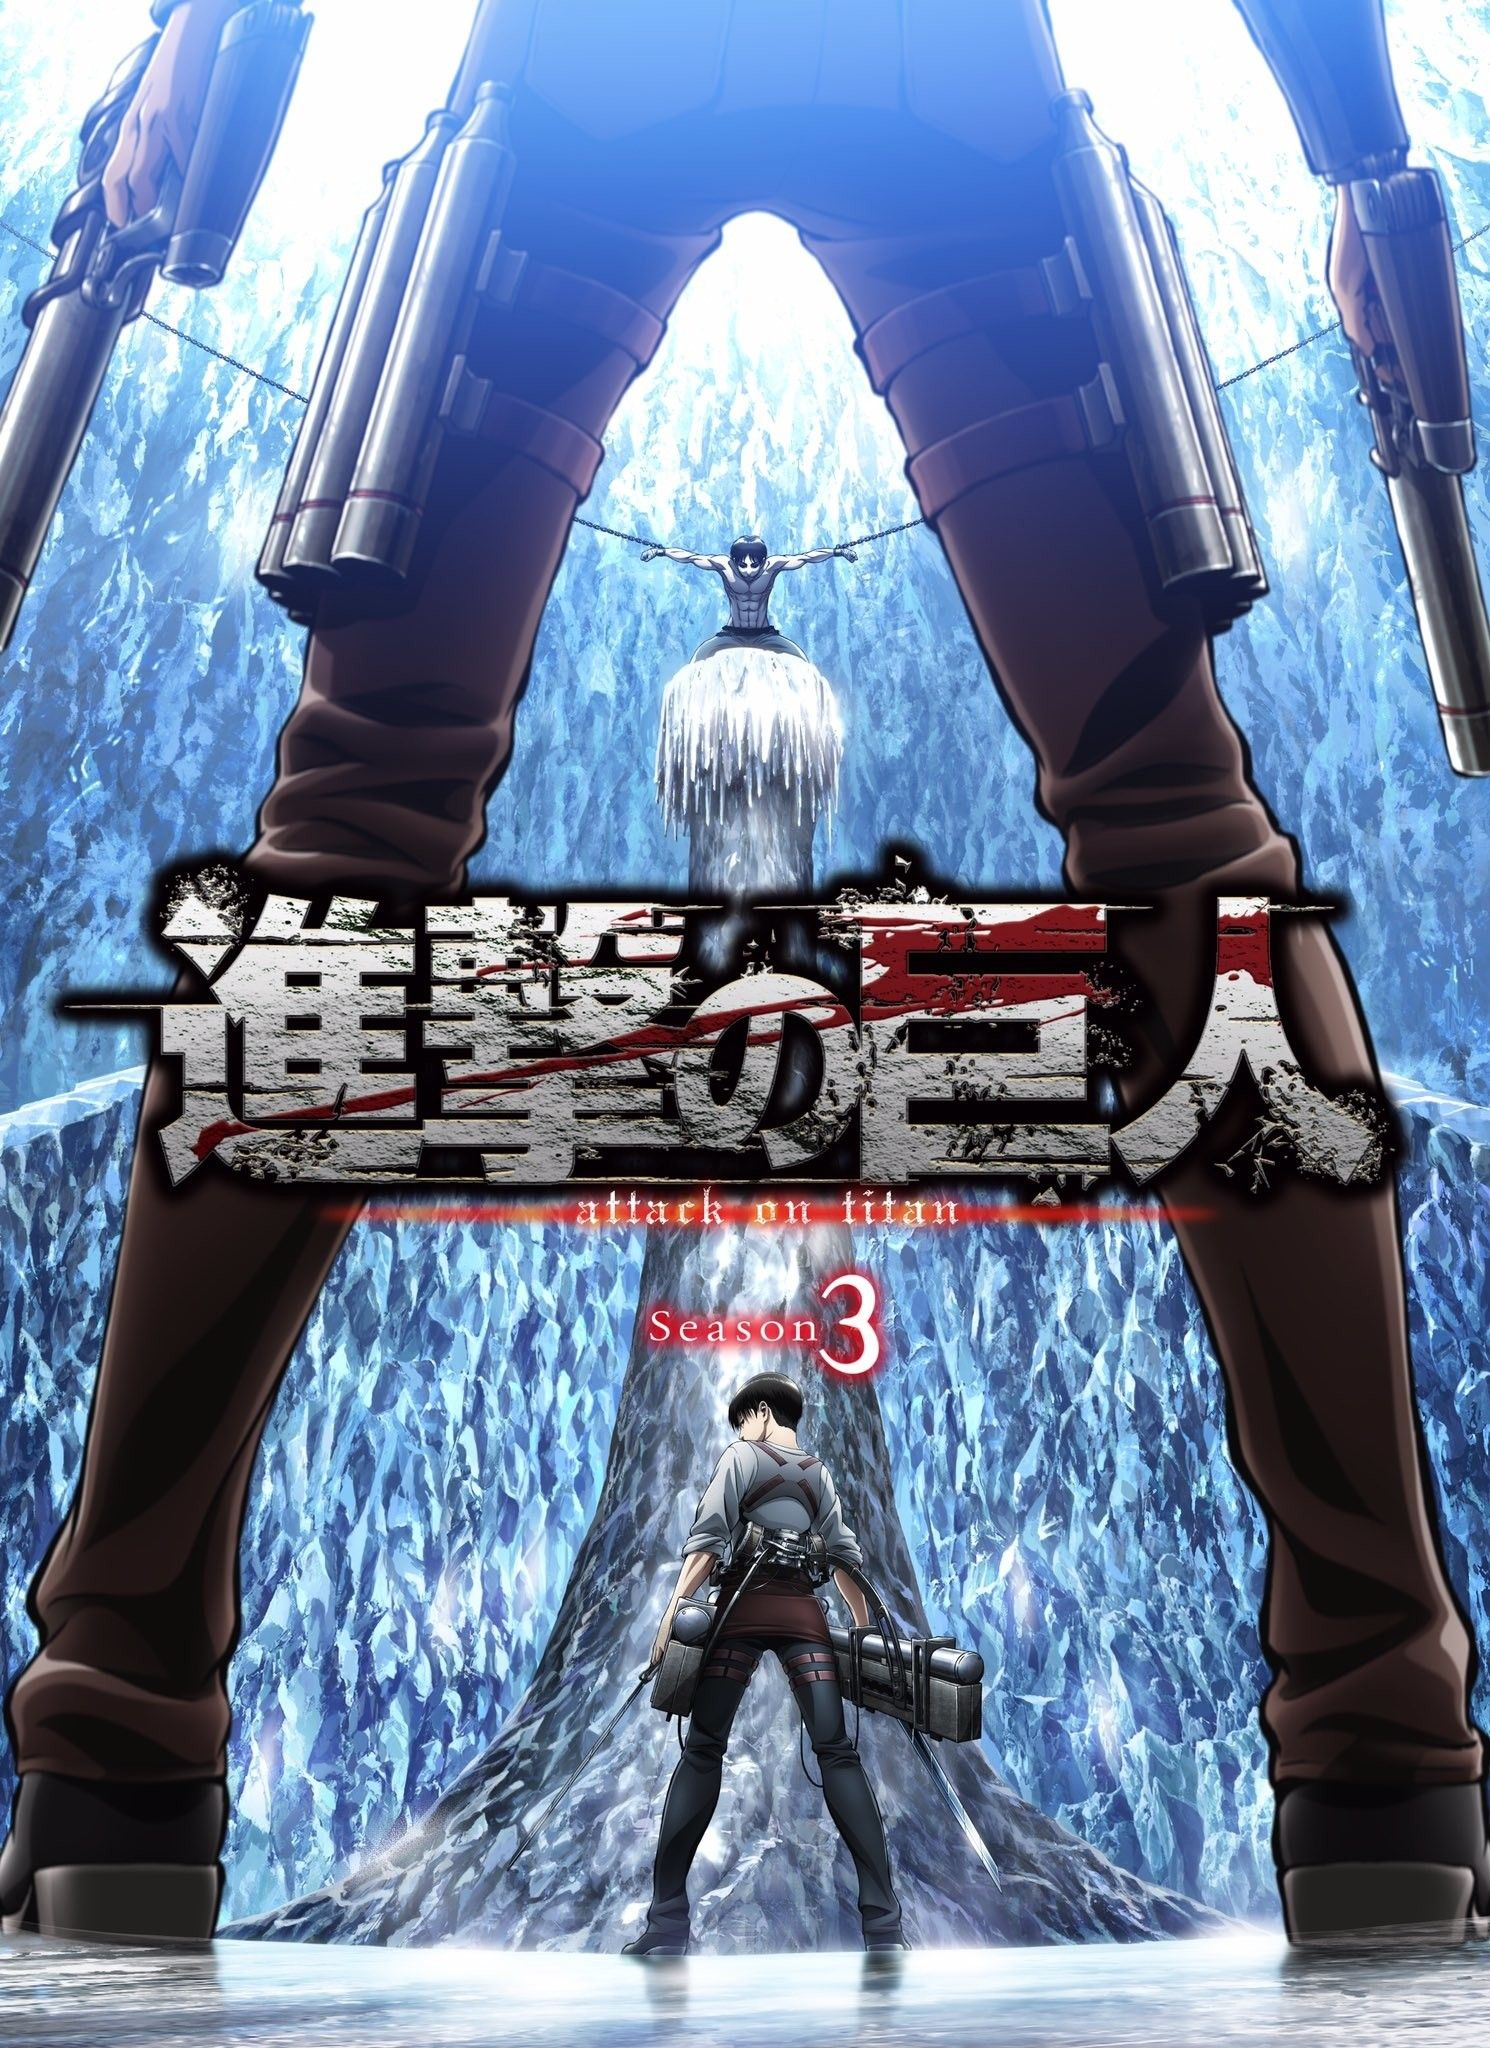 The new season 3 poster!!!!!! With Eren, Levi and Kenny